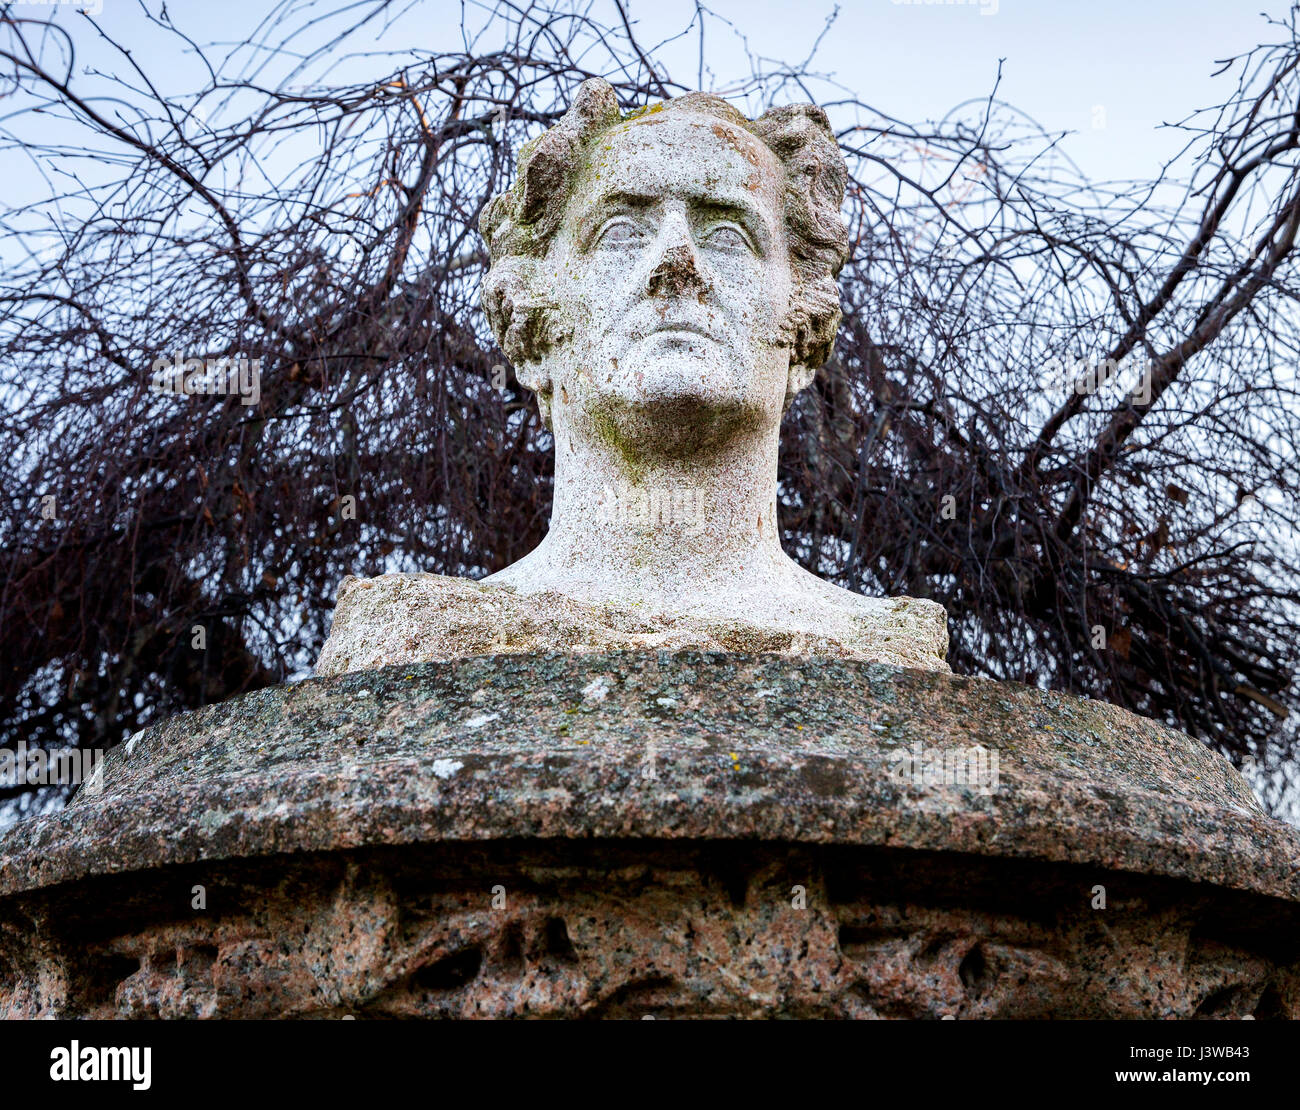 Bust of French writer and politician Francois-Rene de Chateaubriand in Treguier, France - Sculpture by Yves Kerguenou Stock Photo